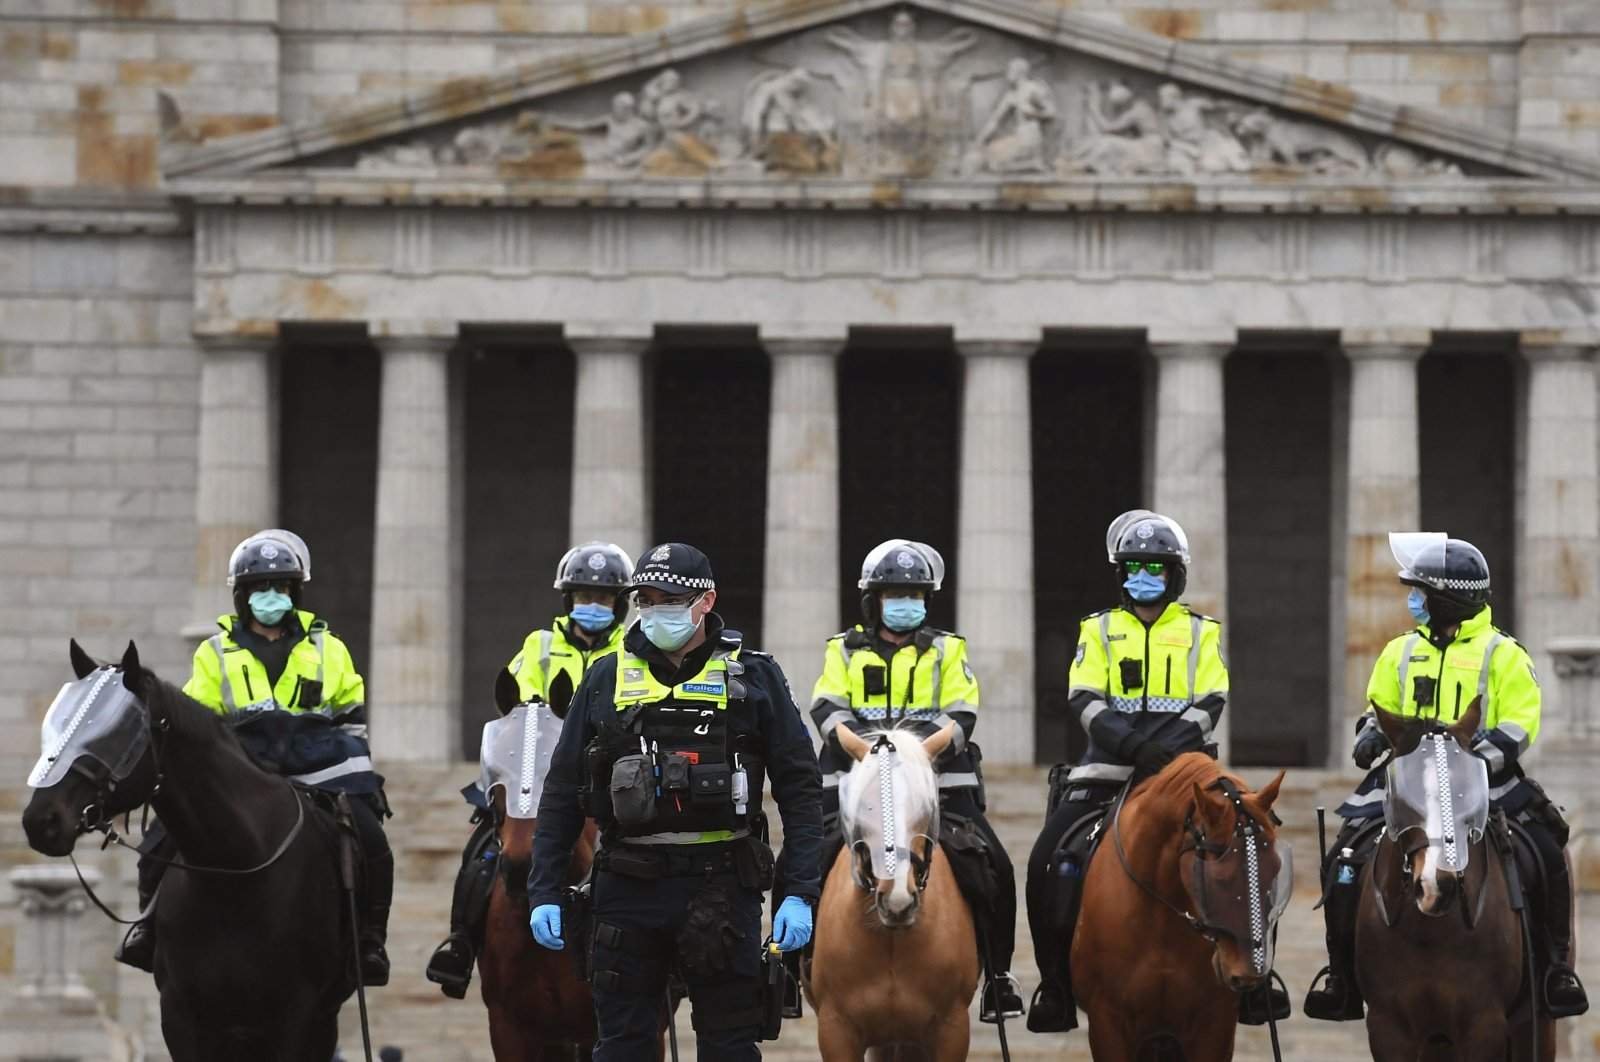 Police stand guard in front of the Shrine of Remembrance during an anti-lockdown rally, Melbourne, Australia, Sept. 12, 2020. (AFP Photo)